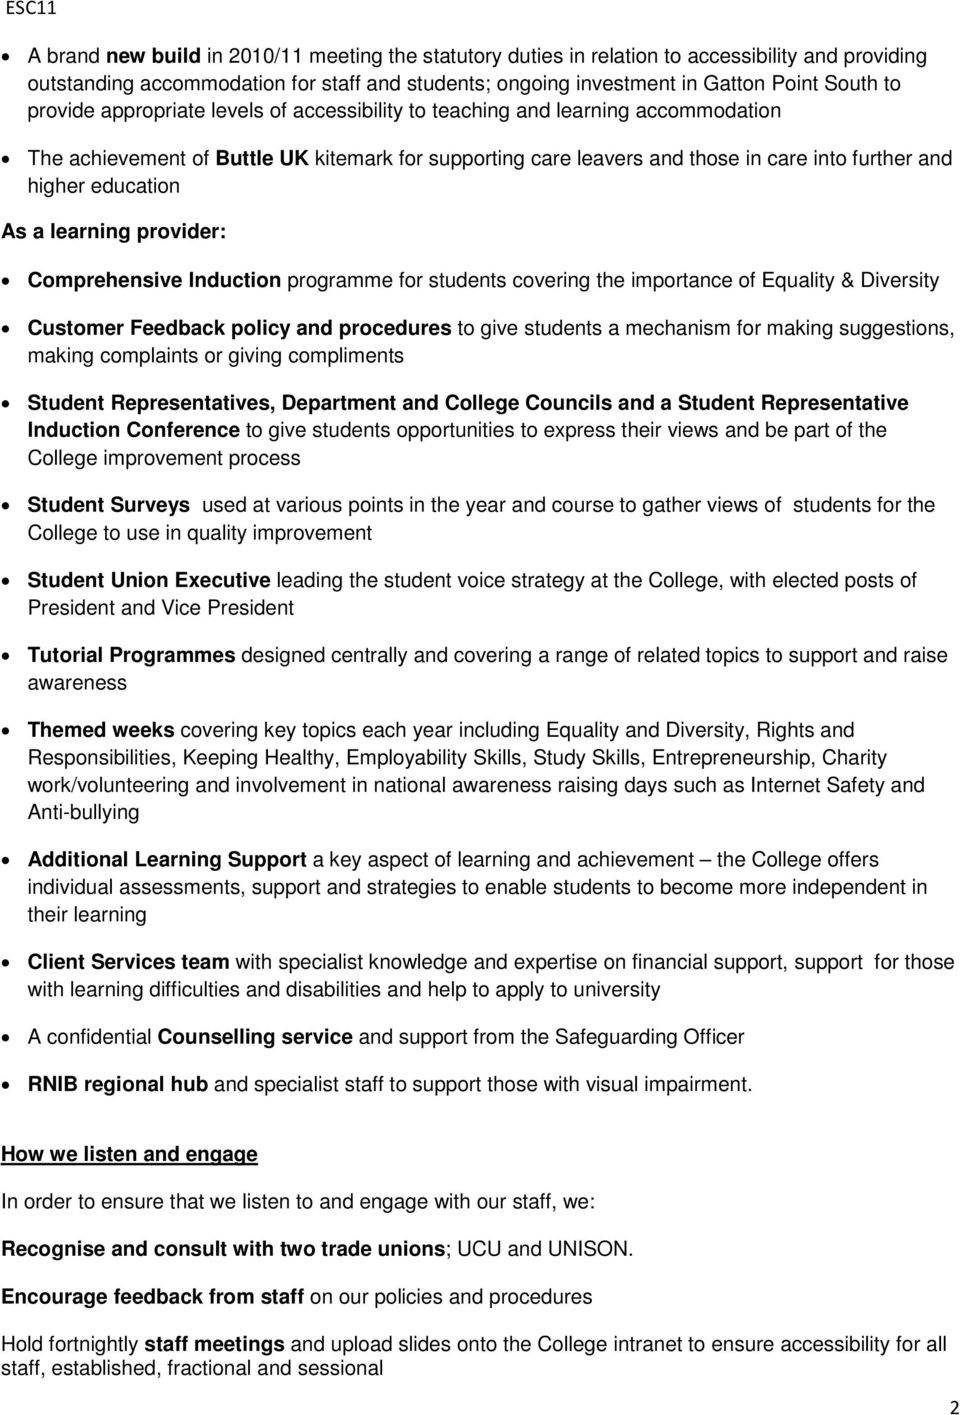 education As a learning provider: Comprehensive Induction programme for students covering the importance of Equality & Diversity Customer Feedback policy and procedures to give students a mechanism